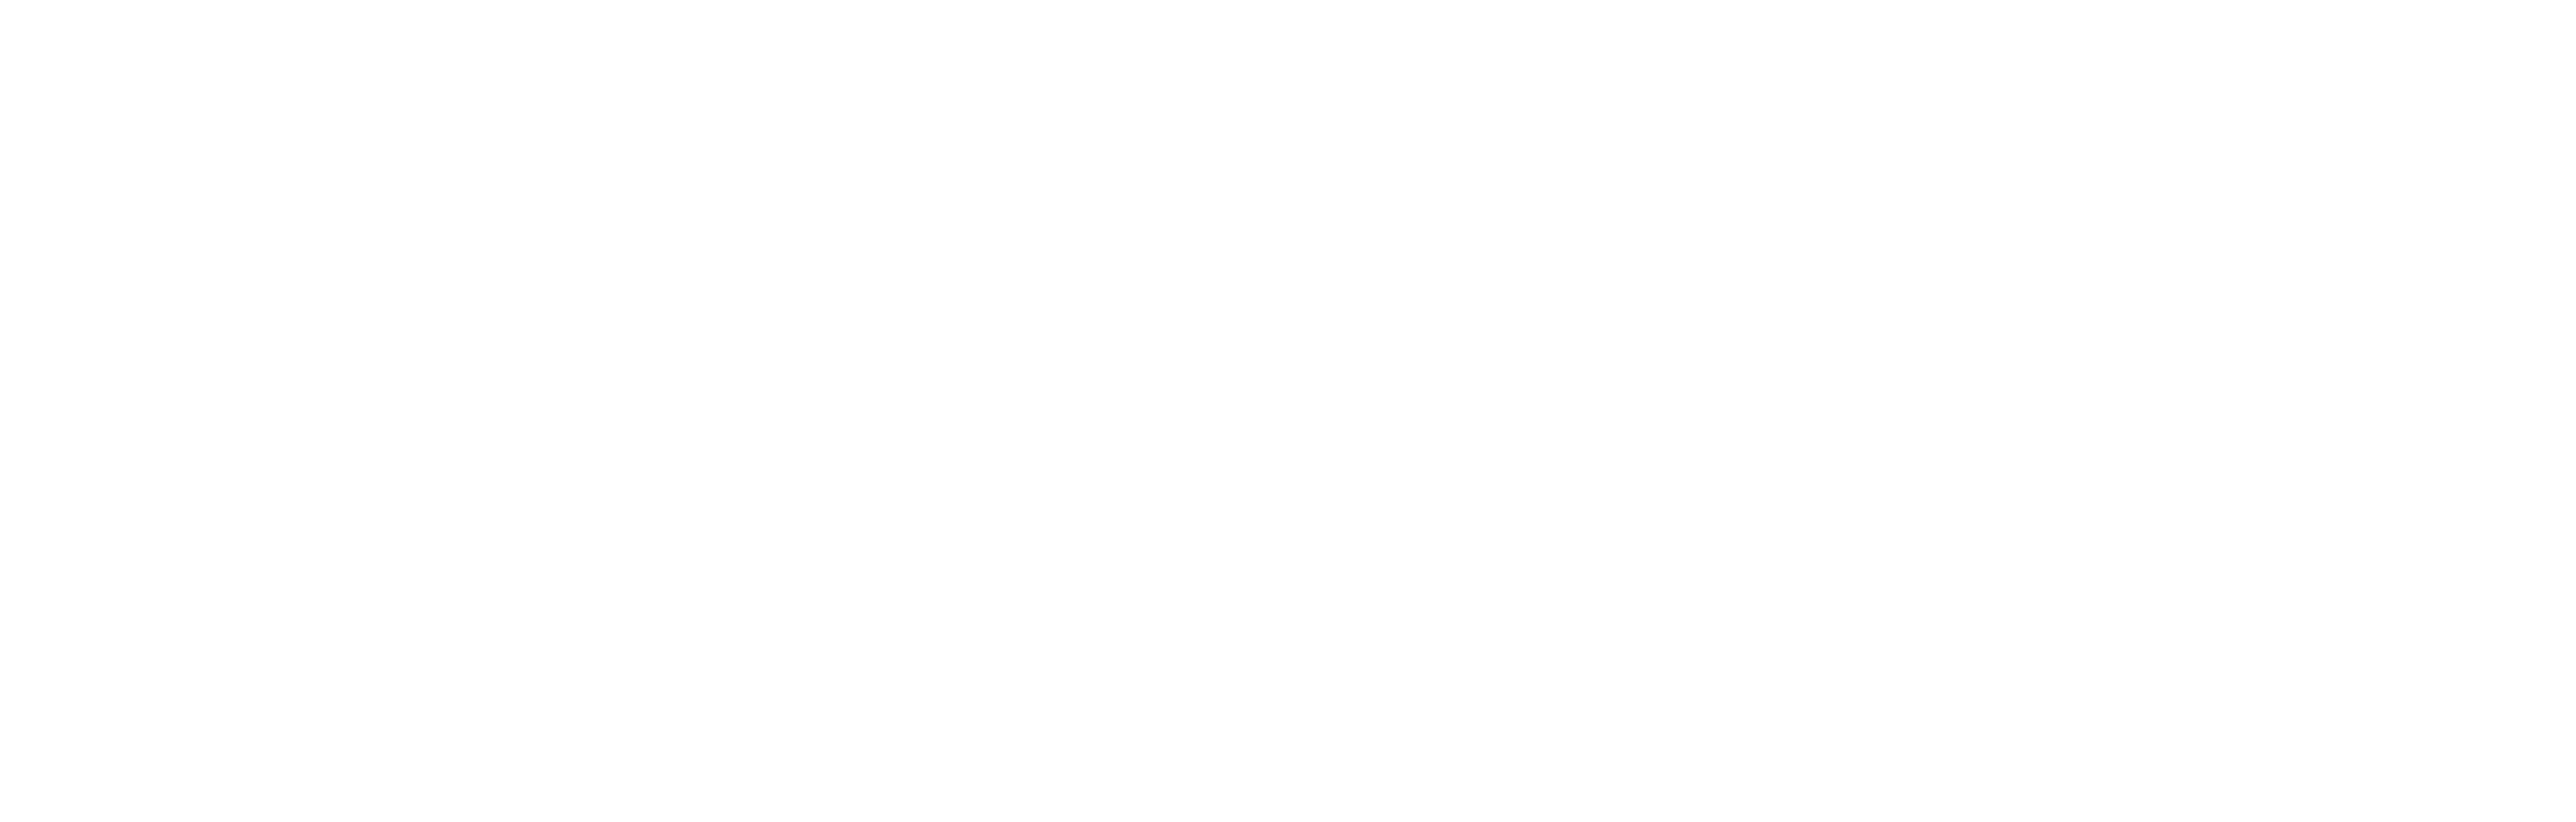 Owl Books Photography